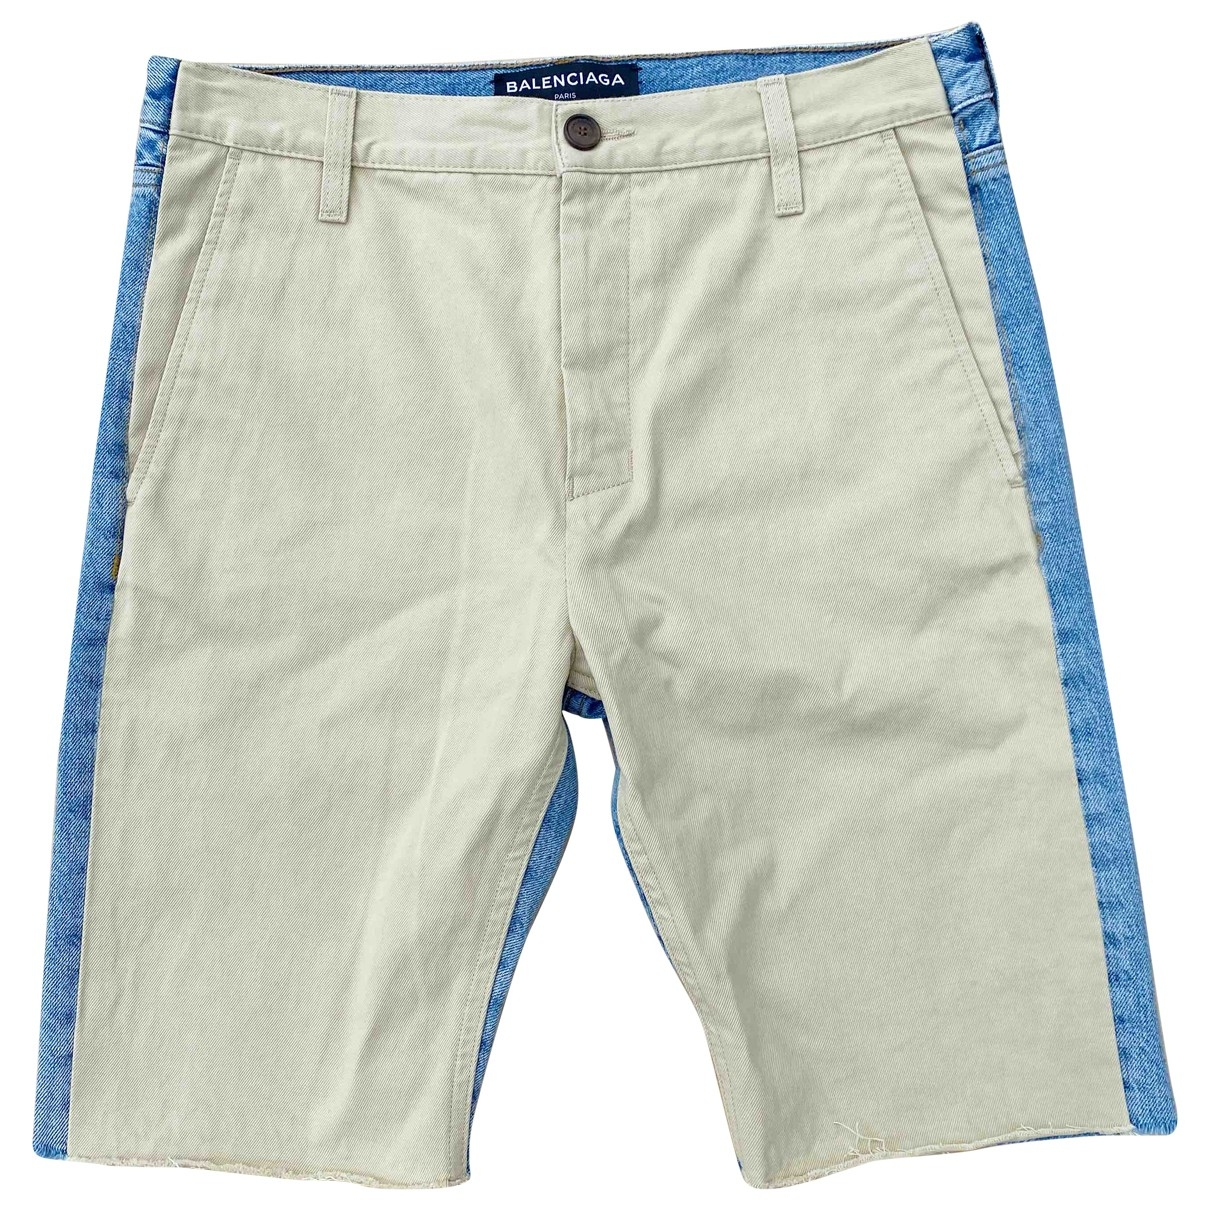 Balenciaga - Short   pour homme en denim - multicolore